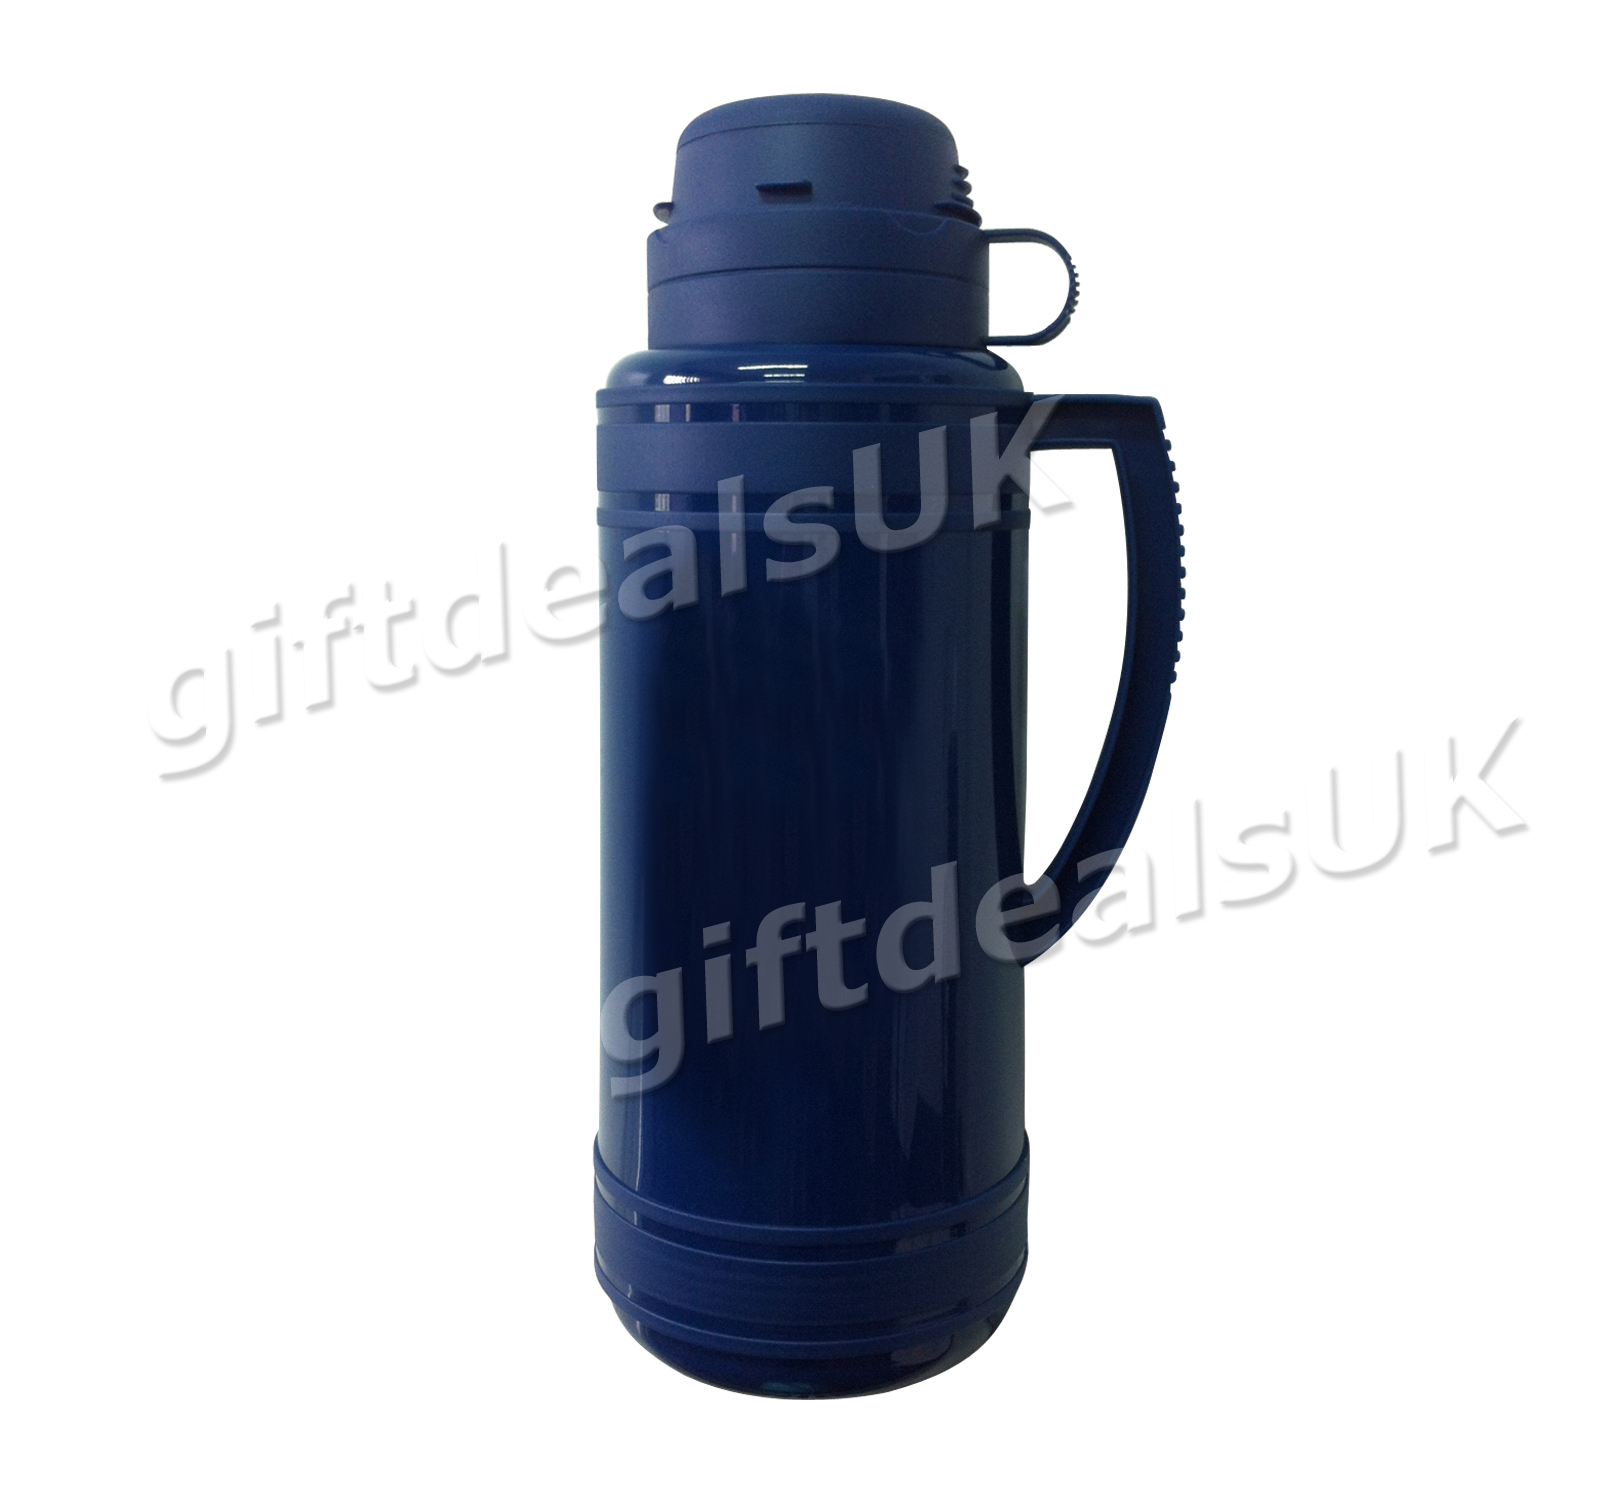 Verre Thermos 5l Plastic Tea Coffee Thermos Hot Cold Drinks Glass